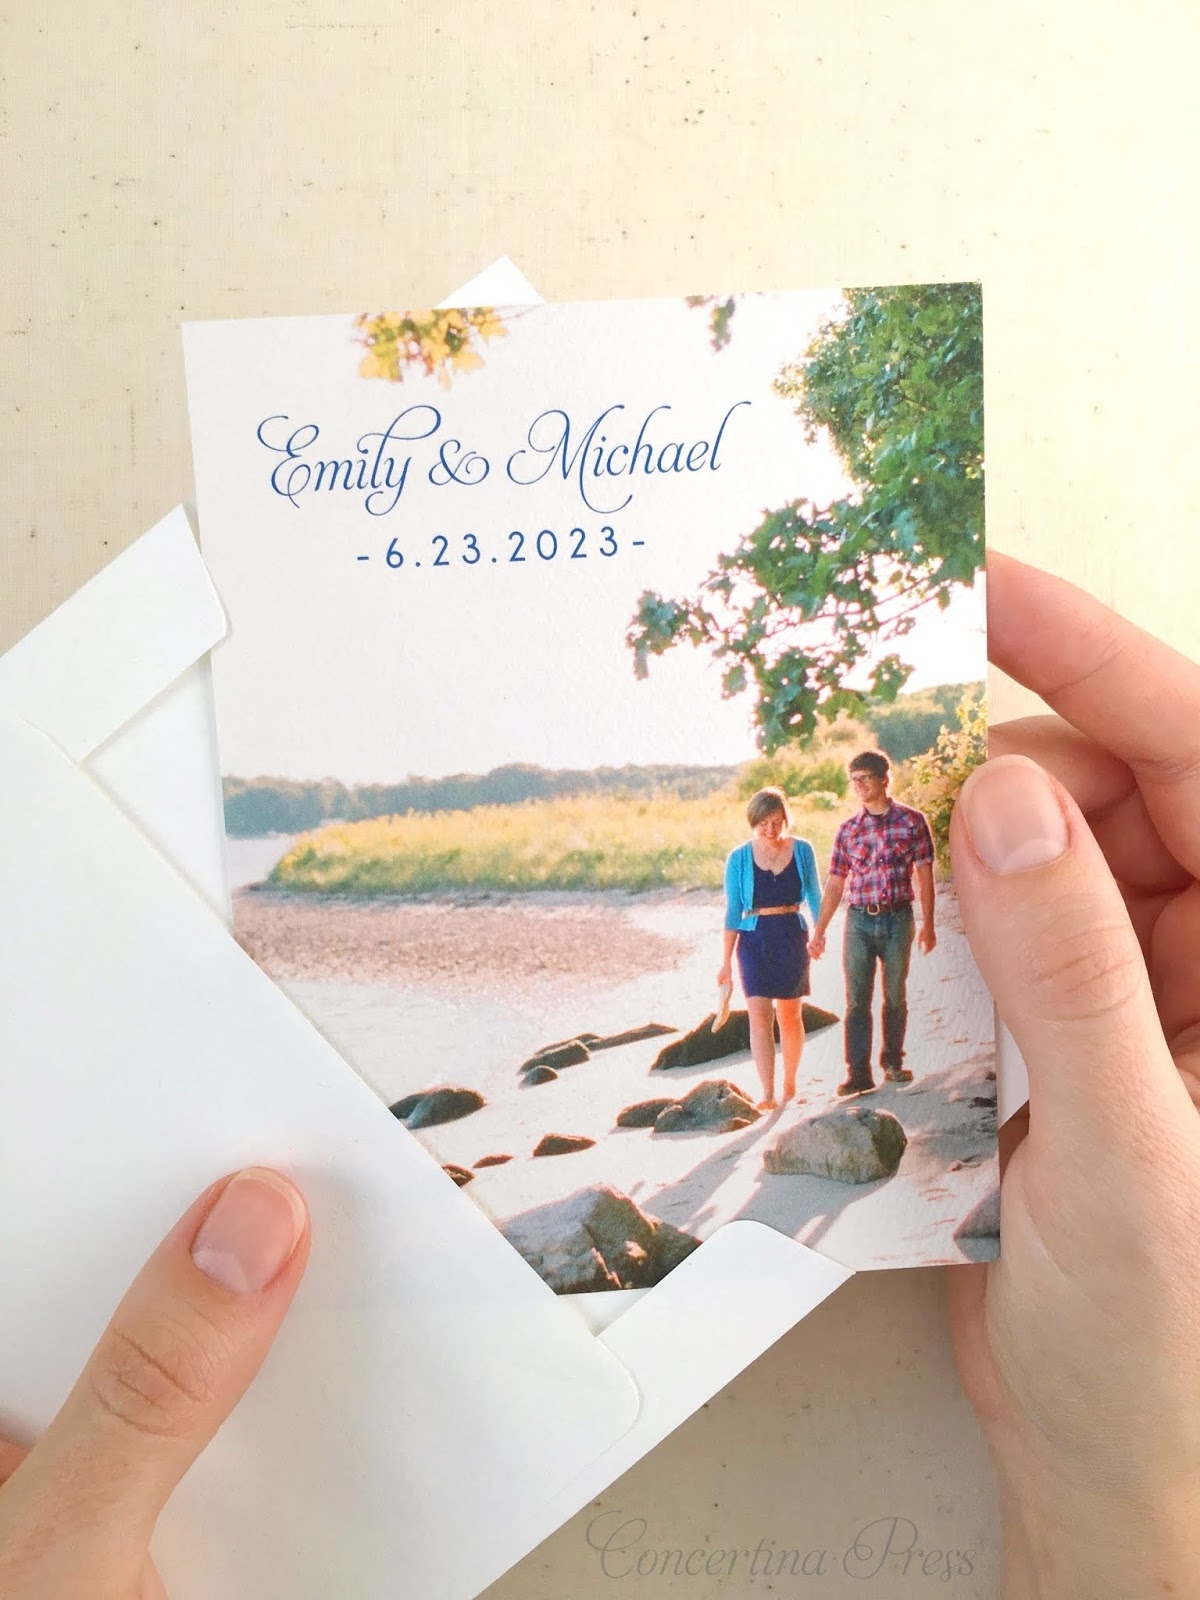 Oyster Save the Date with free Photo Back from Concertina Press